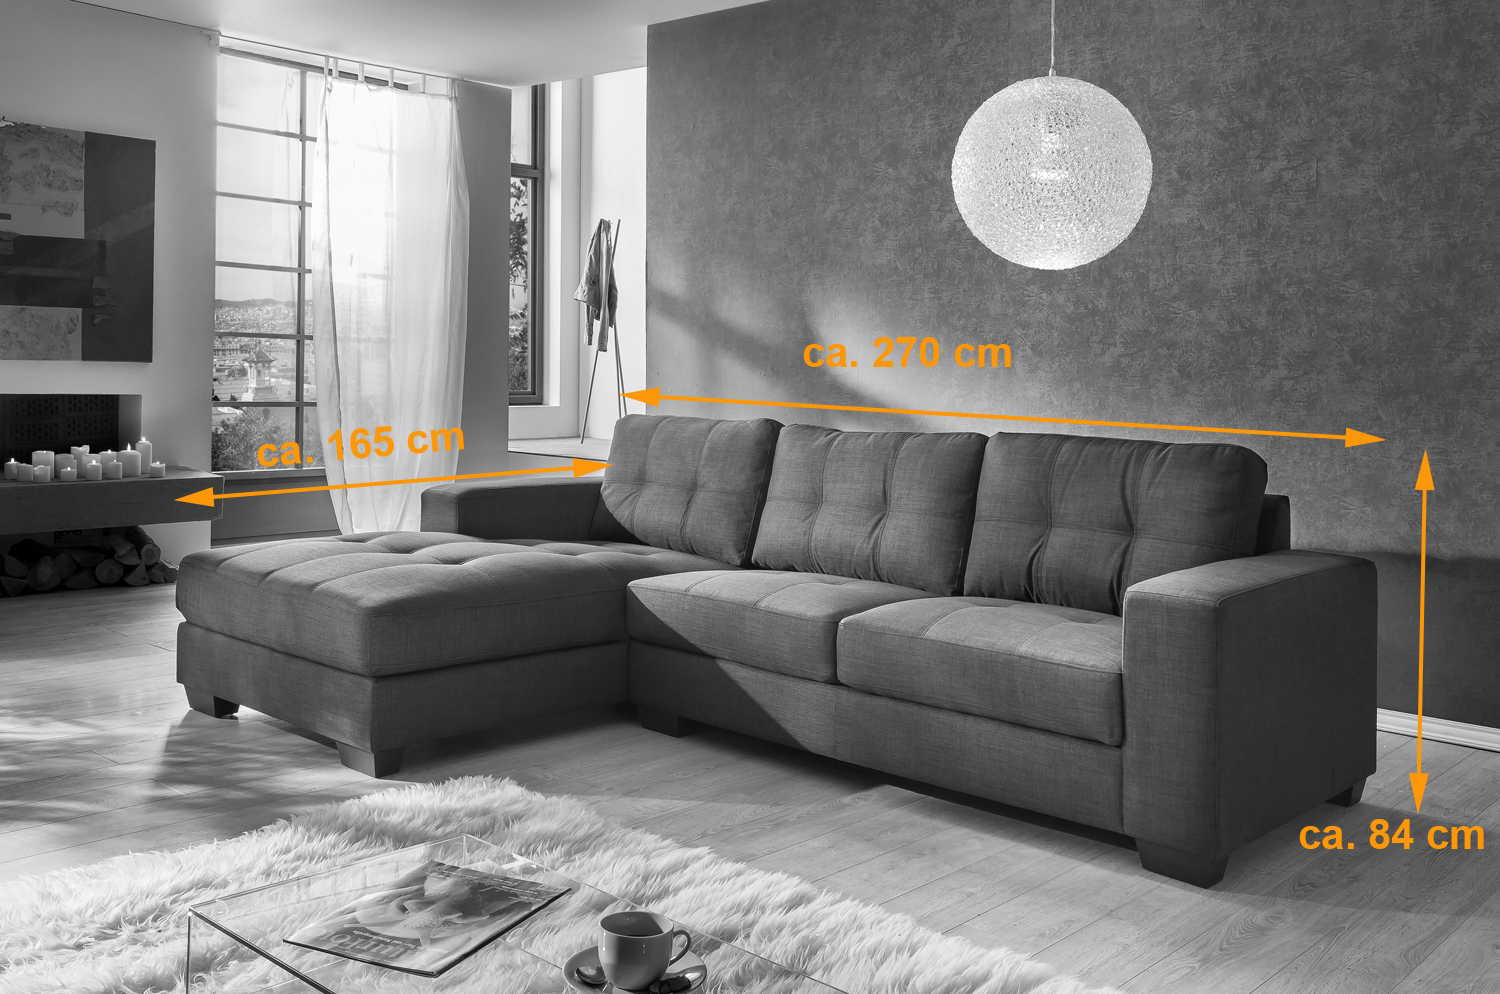 sale couch ecksofa polsterecke 270 x 165 cm grau stoff links aviano. Black Bedroom Furniture Sets. Home Design Ideas